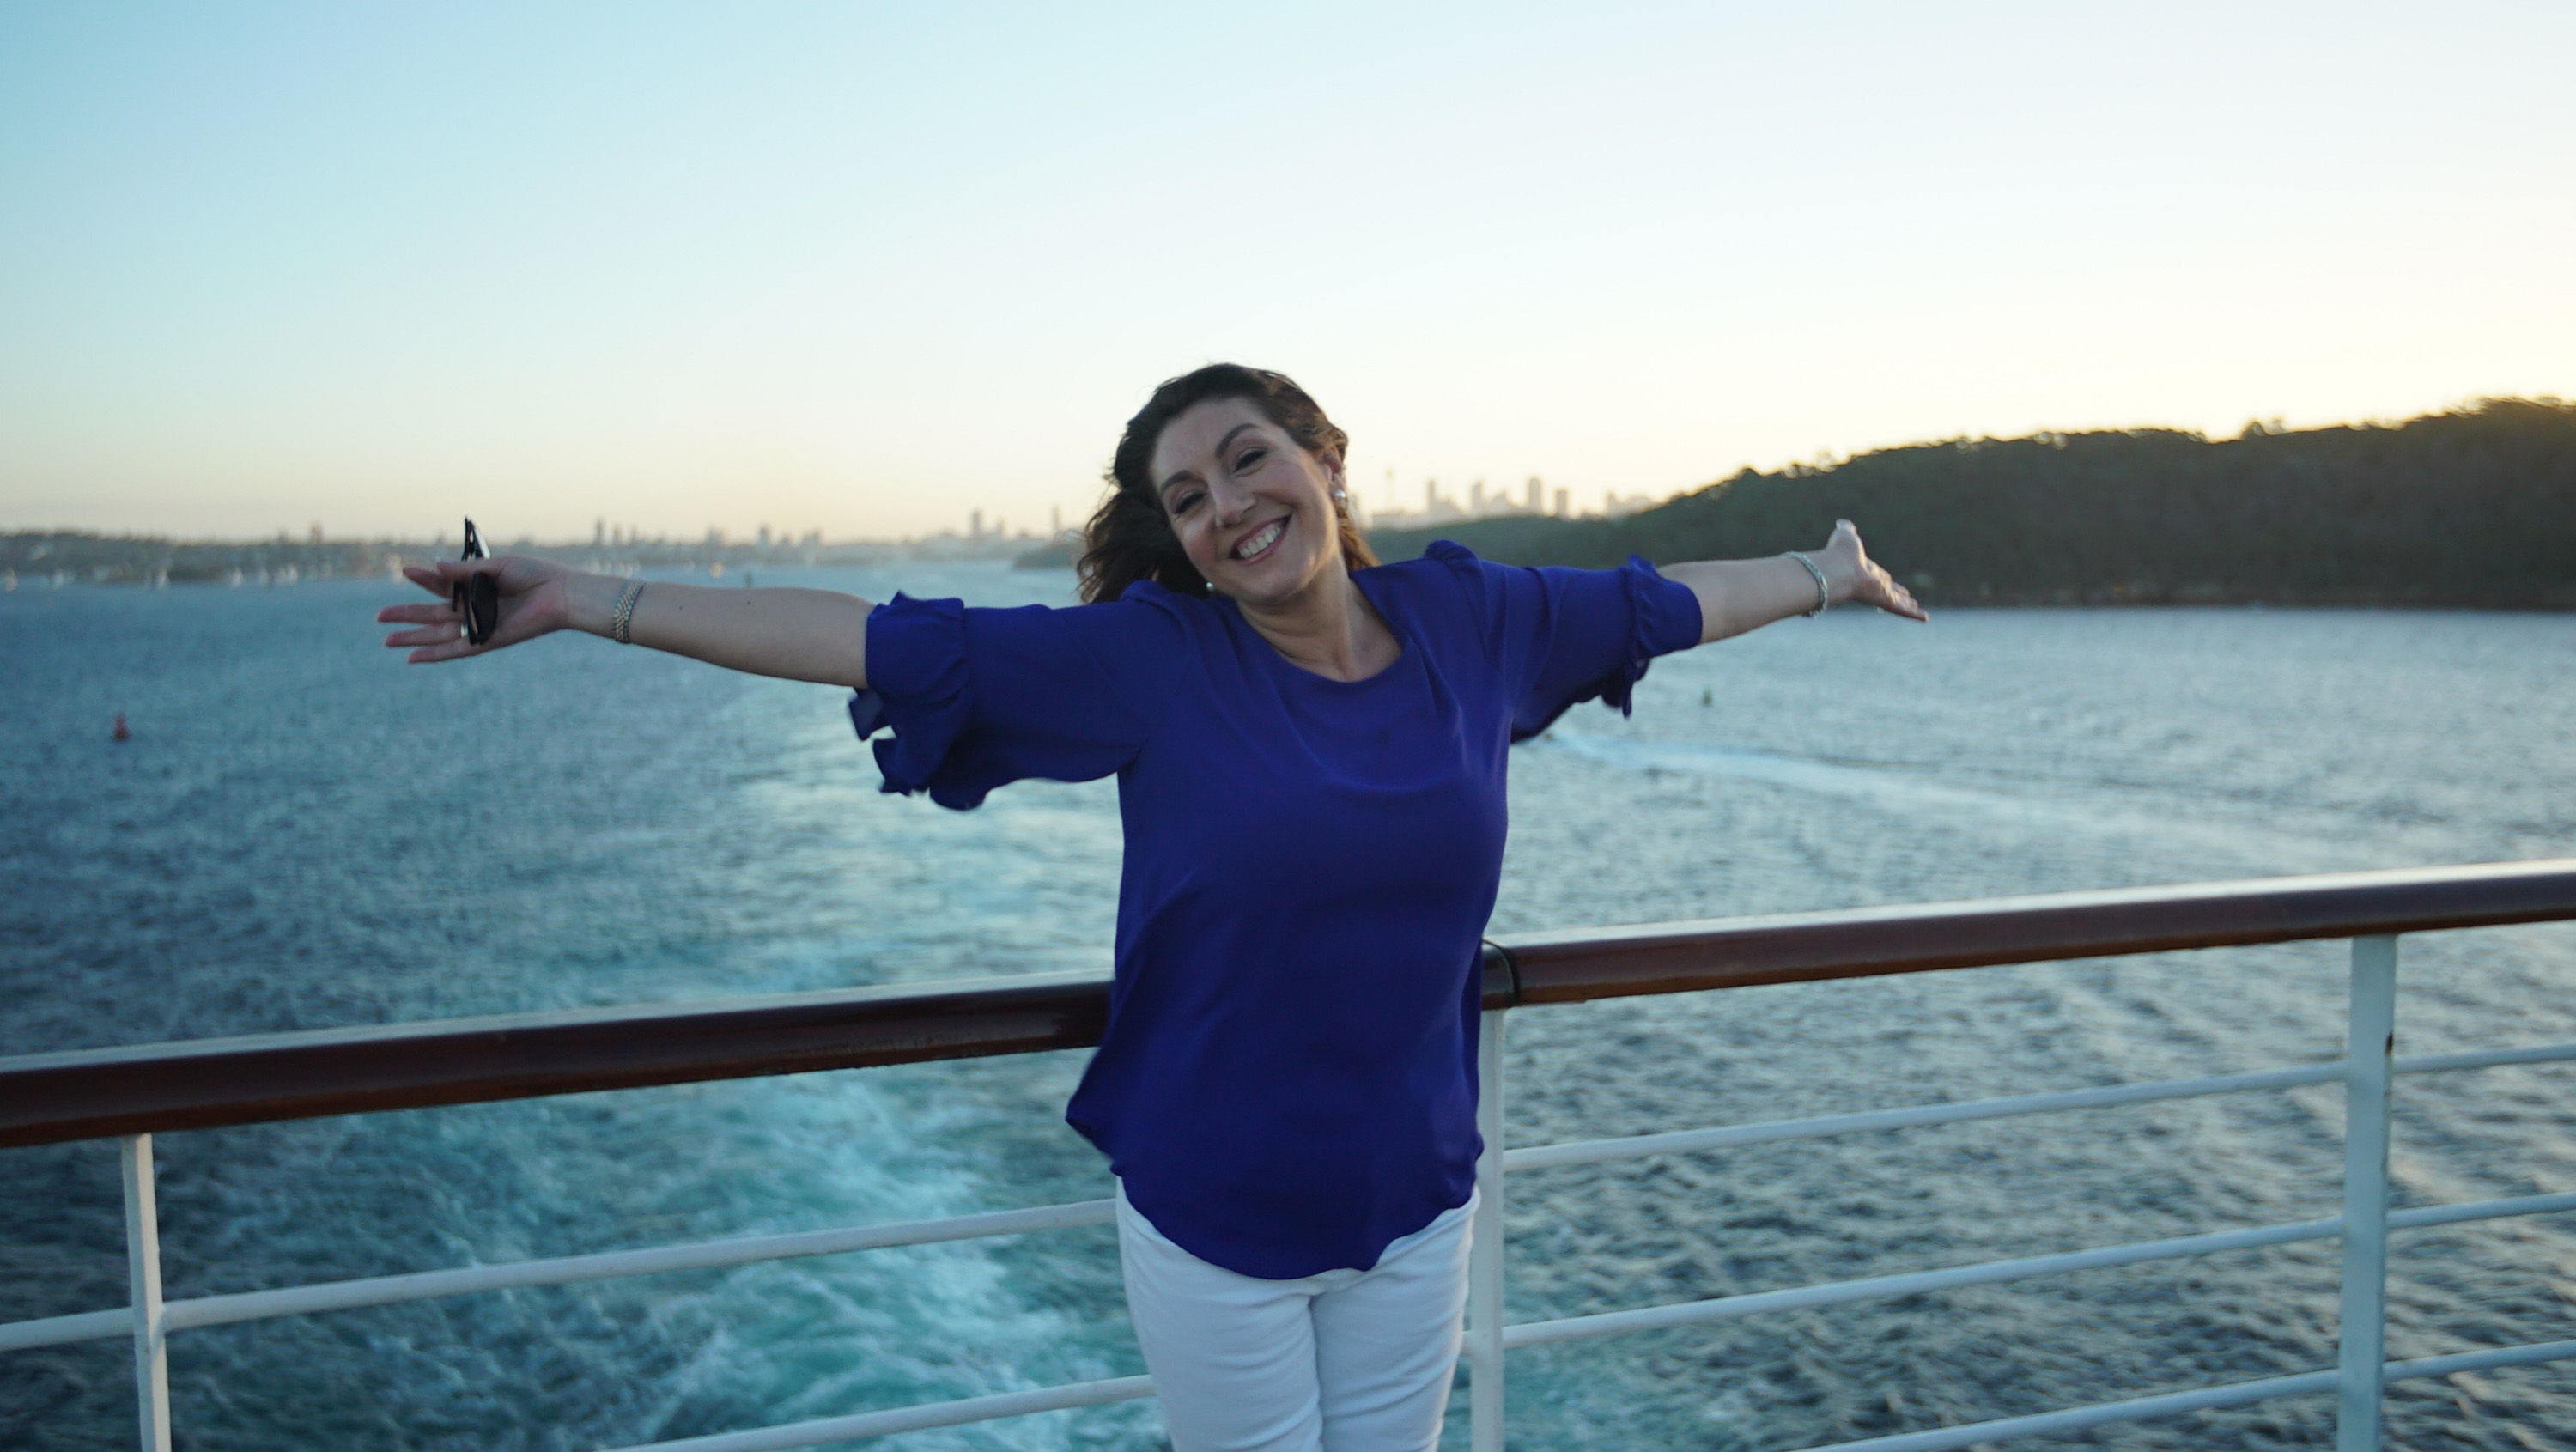 Cruising With Jane Mcdonald - Ep 1 - Jane enjoys the sunshine as she sails away from Sydney, Australia.